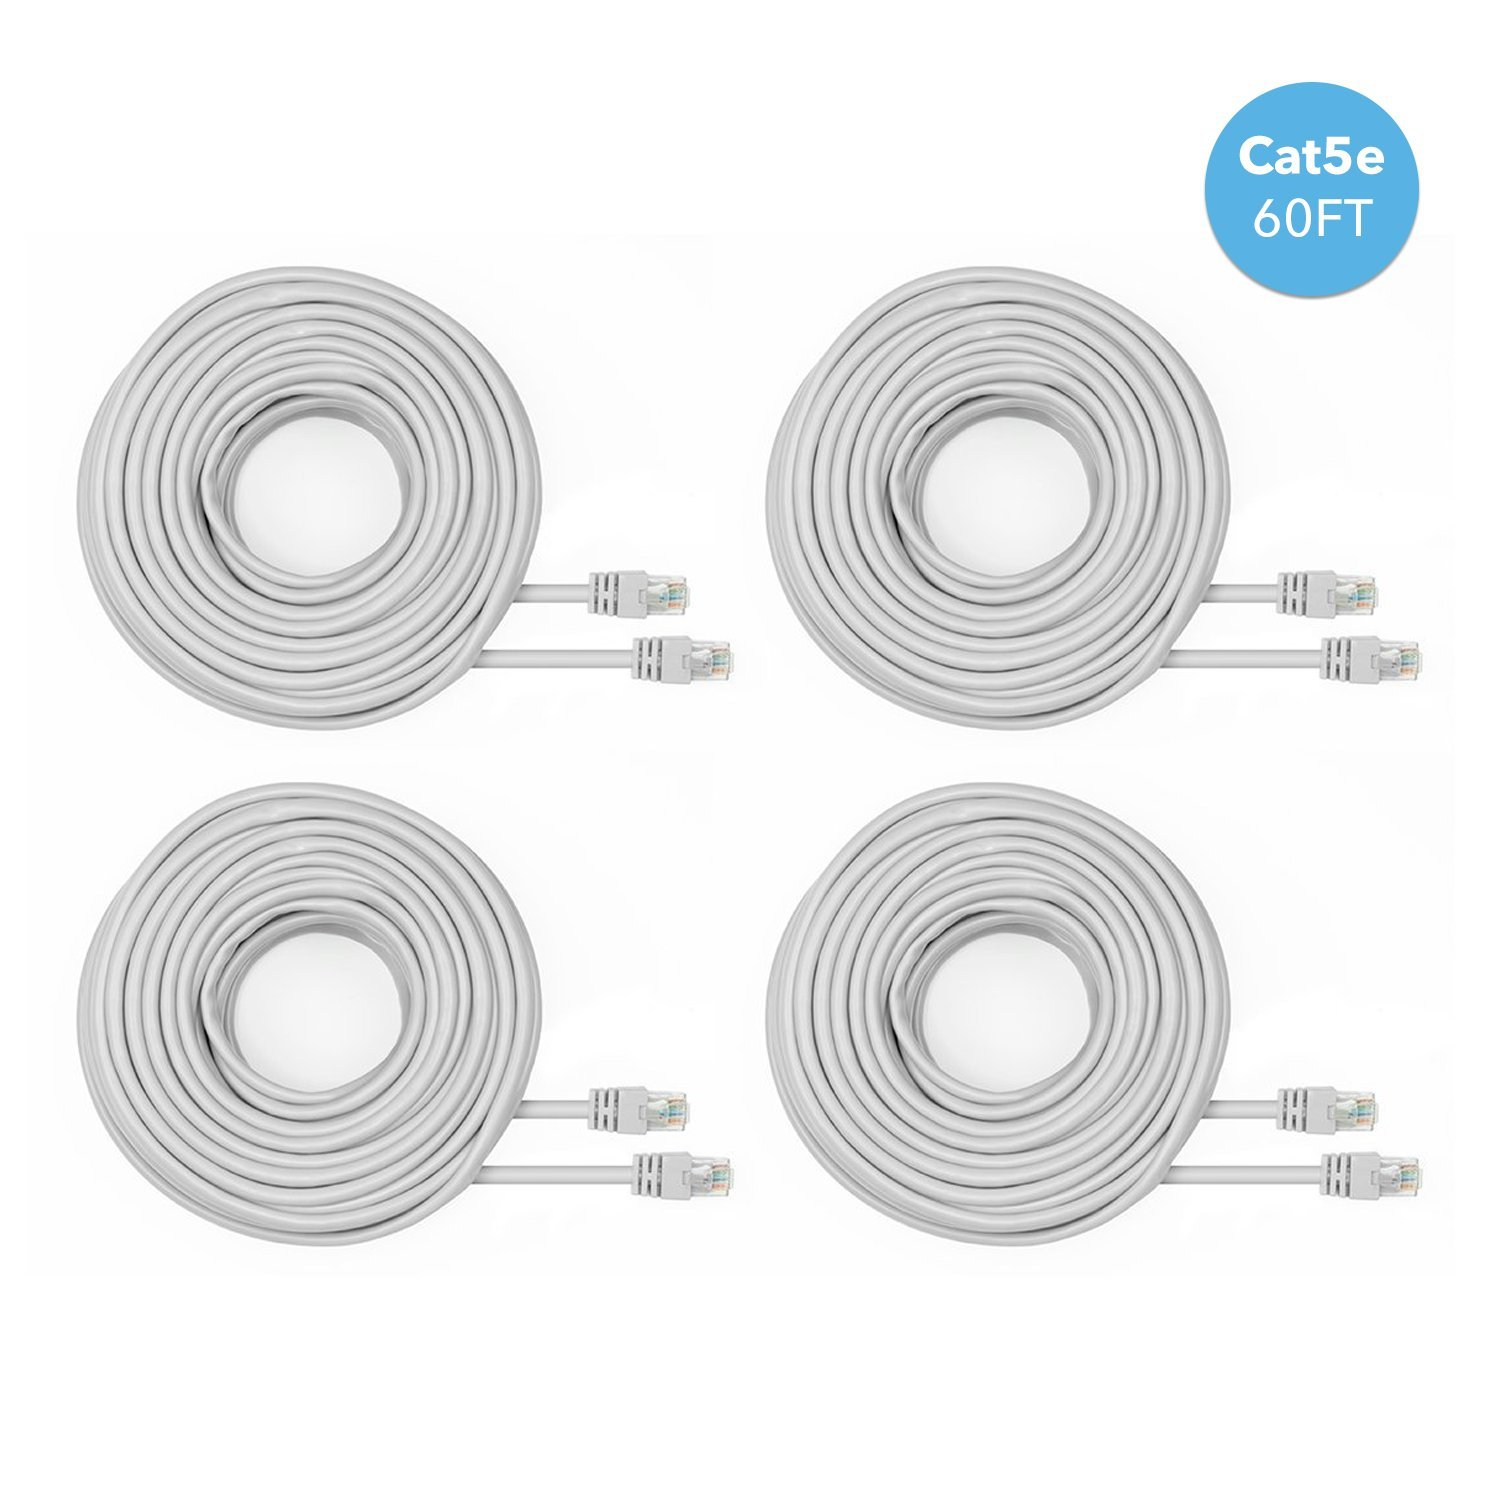 Amcrest Cat5e Cable 60ft Ethernet Cable Internet High Speed Network Cable for POE Security Cameras, Smart TV, PS4, Xbox One, Router, Laptop, Computer, Home, 4-Pack (4PACK-CAT5ECABLE60) by Amcrest